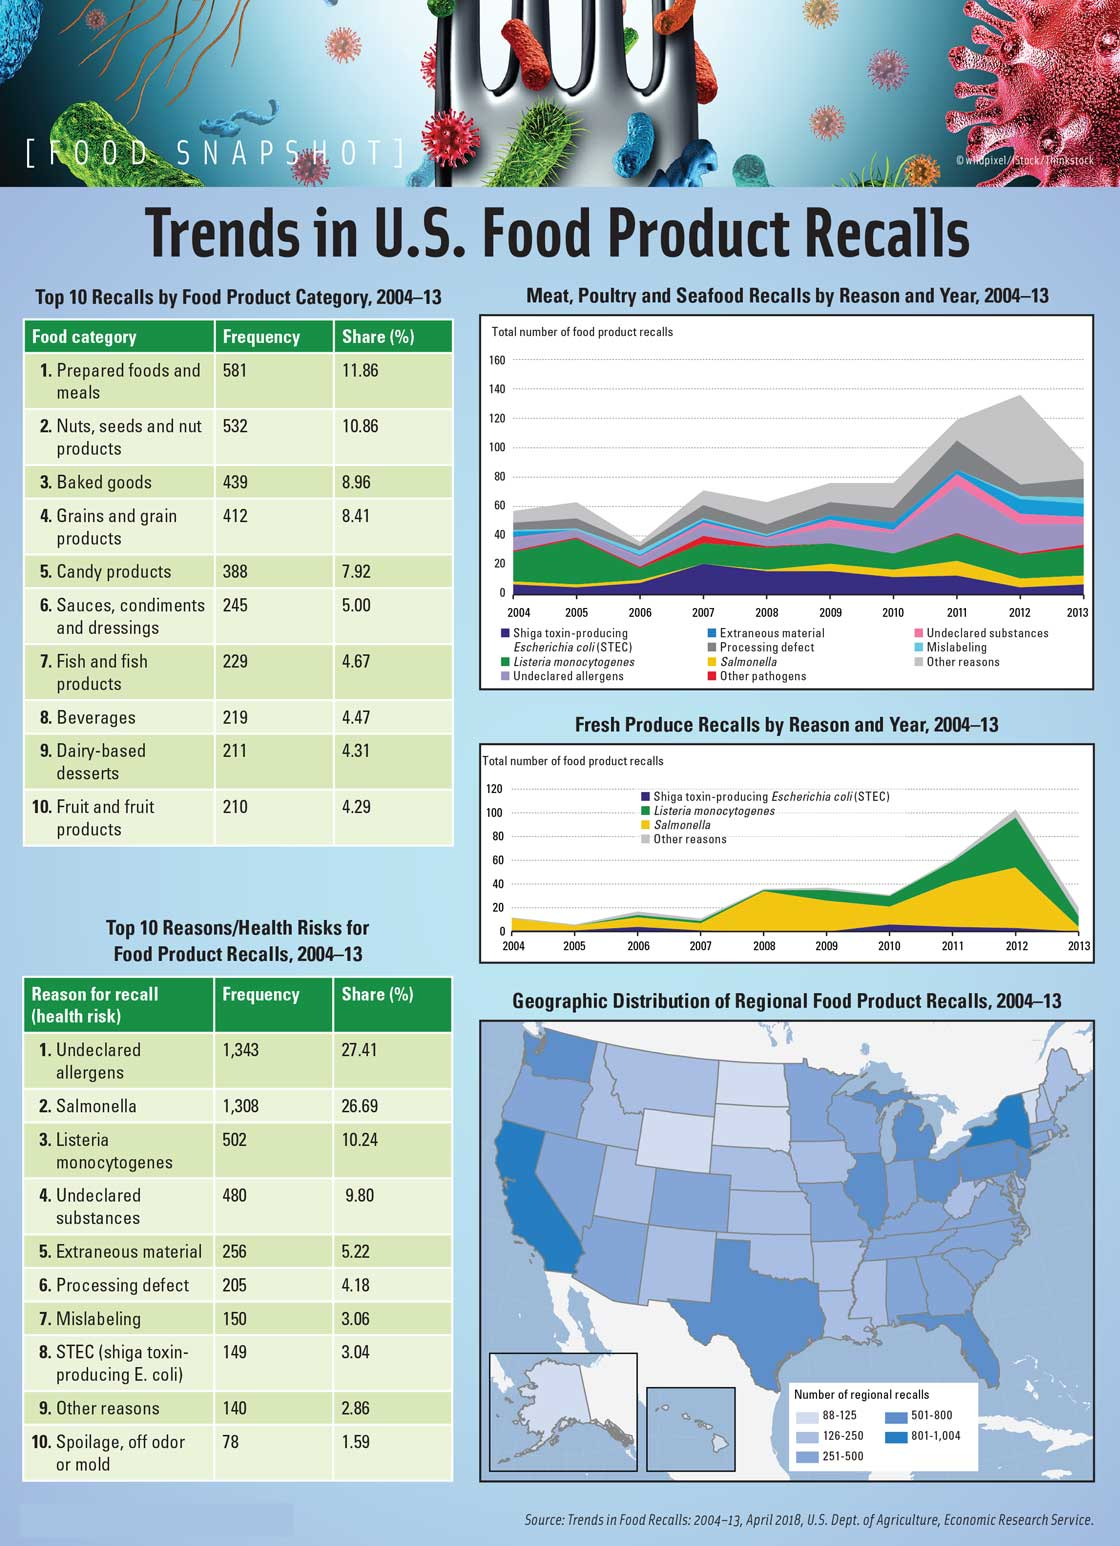 Trends in U.S. Food Product Recalls. Source: Trends in Food Recalls: 2004–13, April 2018, U.S. Dept. of Agriculture, Economic Research Service.